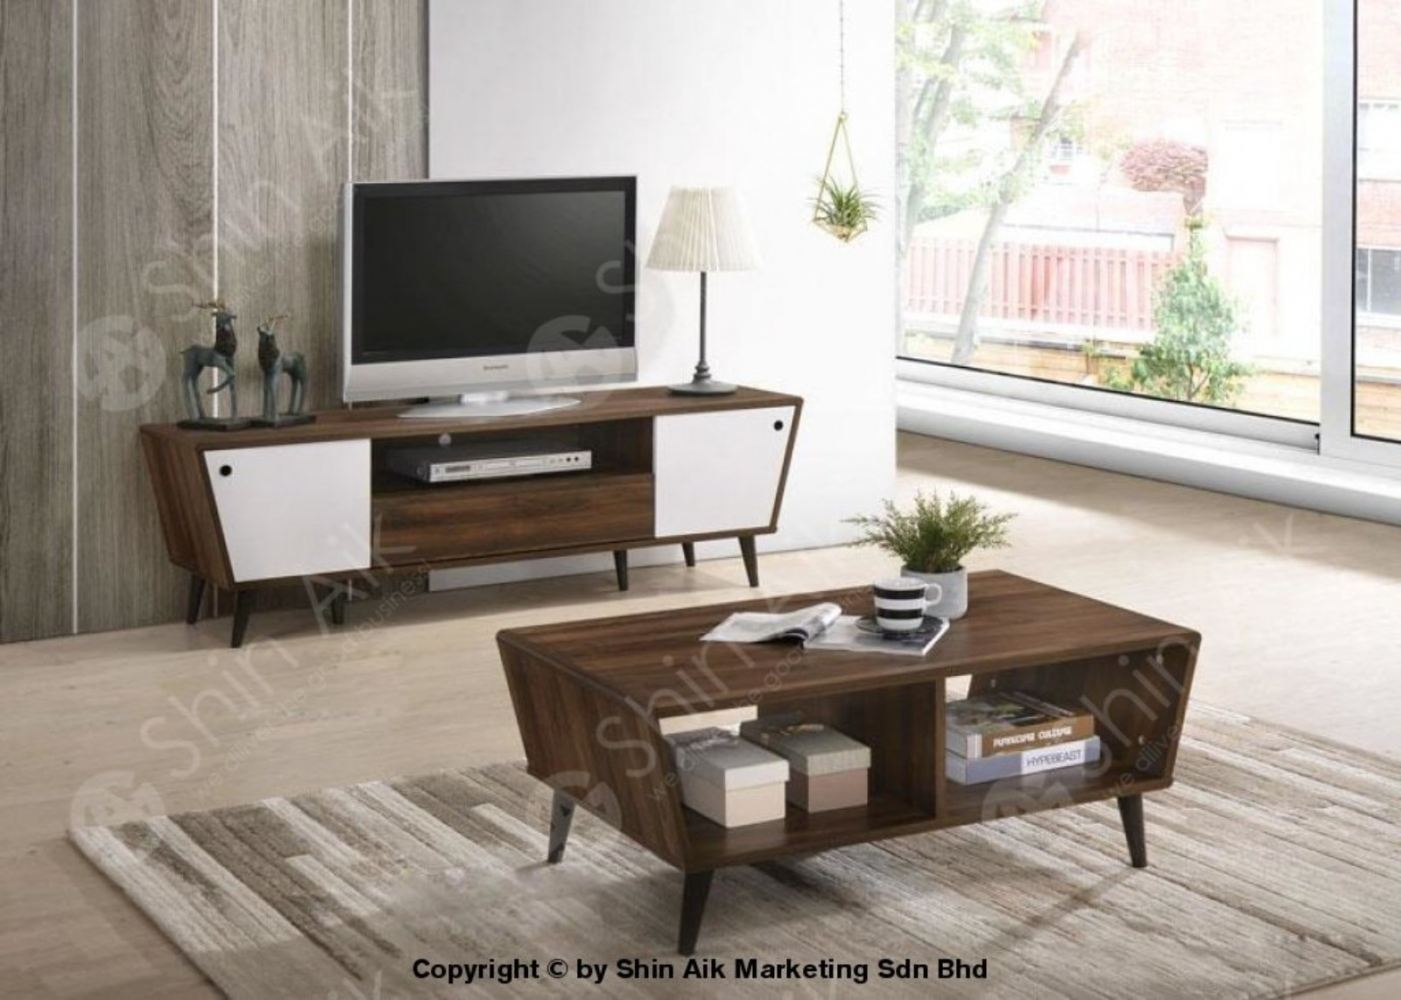 Walnut & White Mid-Century Modern Two-Tone TV Cabinet (5'ft) & Coffee Table - SA1632TV&CT